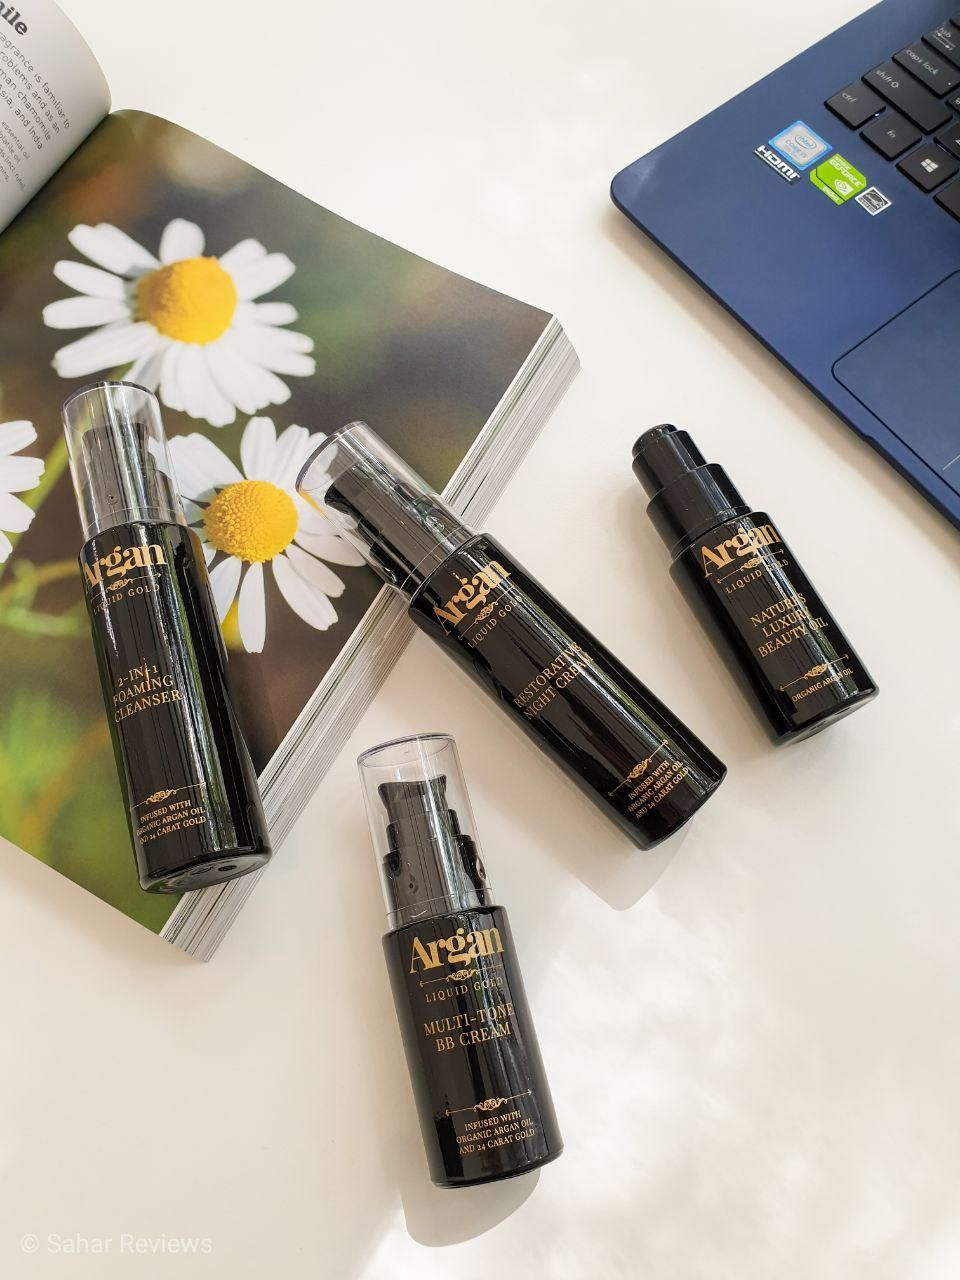 Argan Liquid Gold Dubai